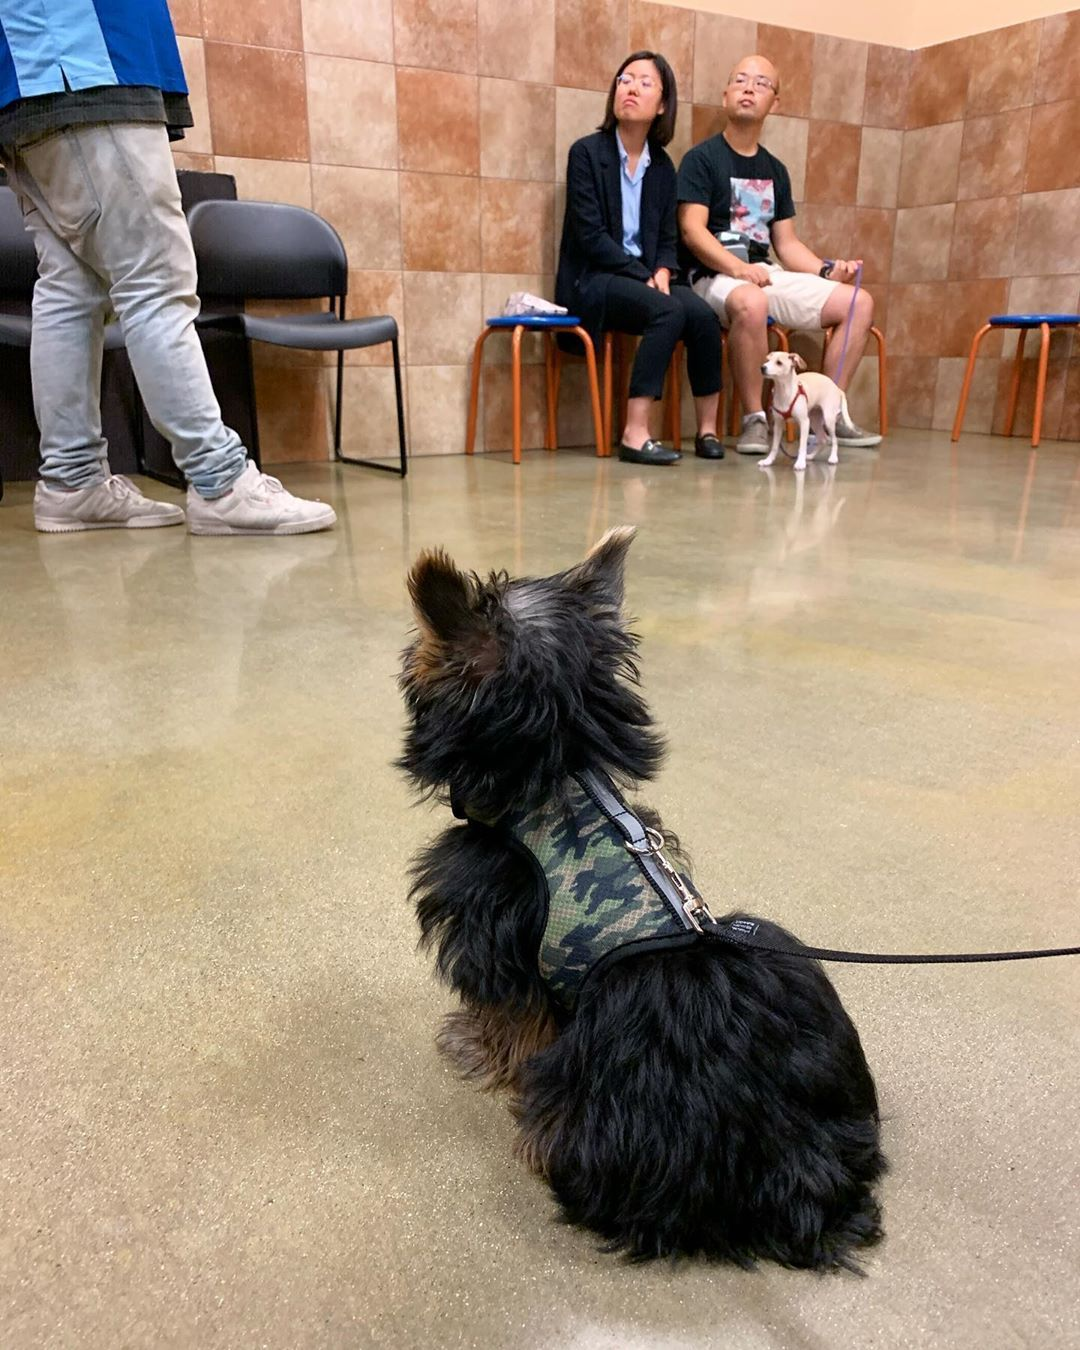 My Hoomans Enrolled Me In Puppy Training Classes Petsmart And I